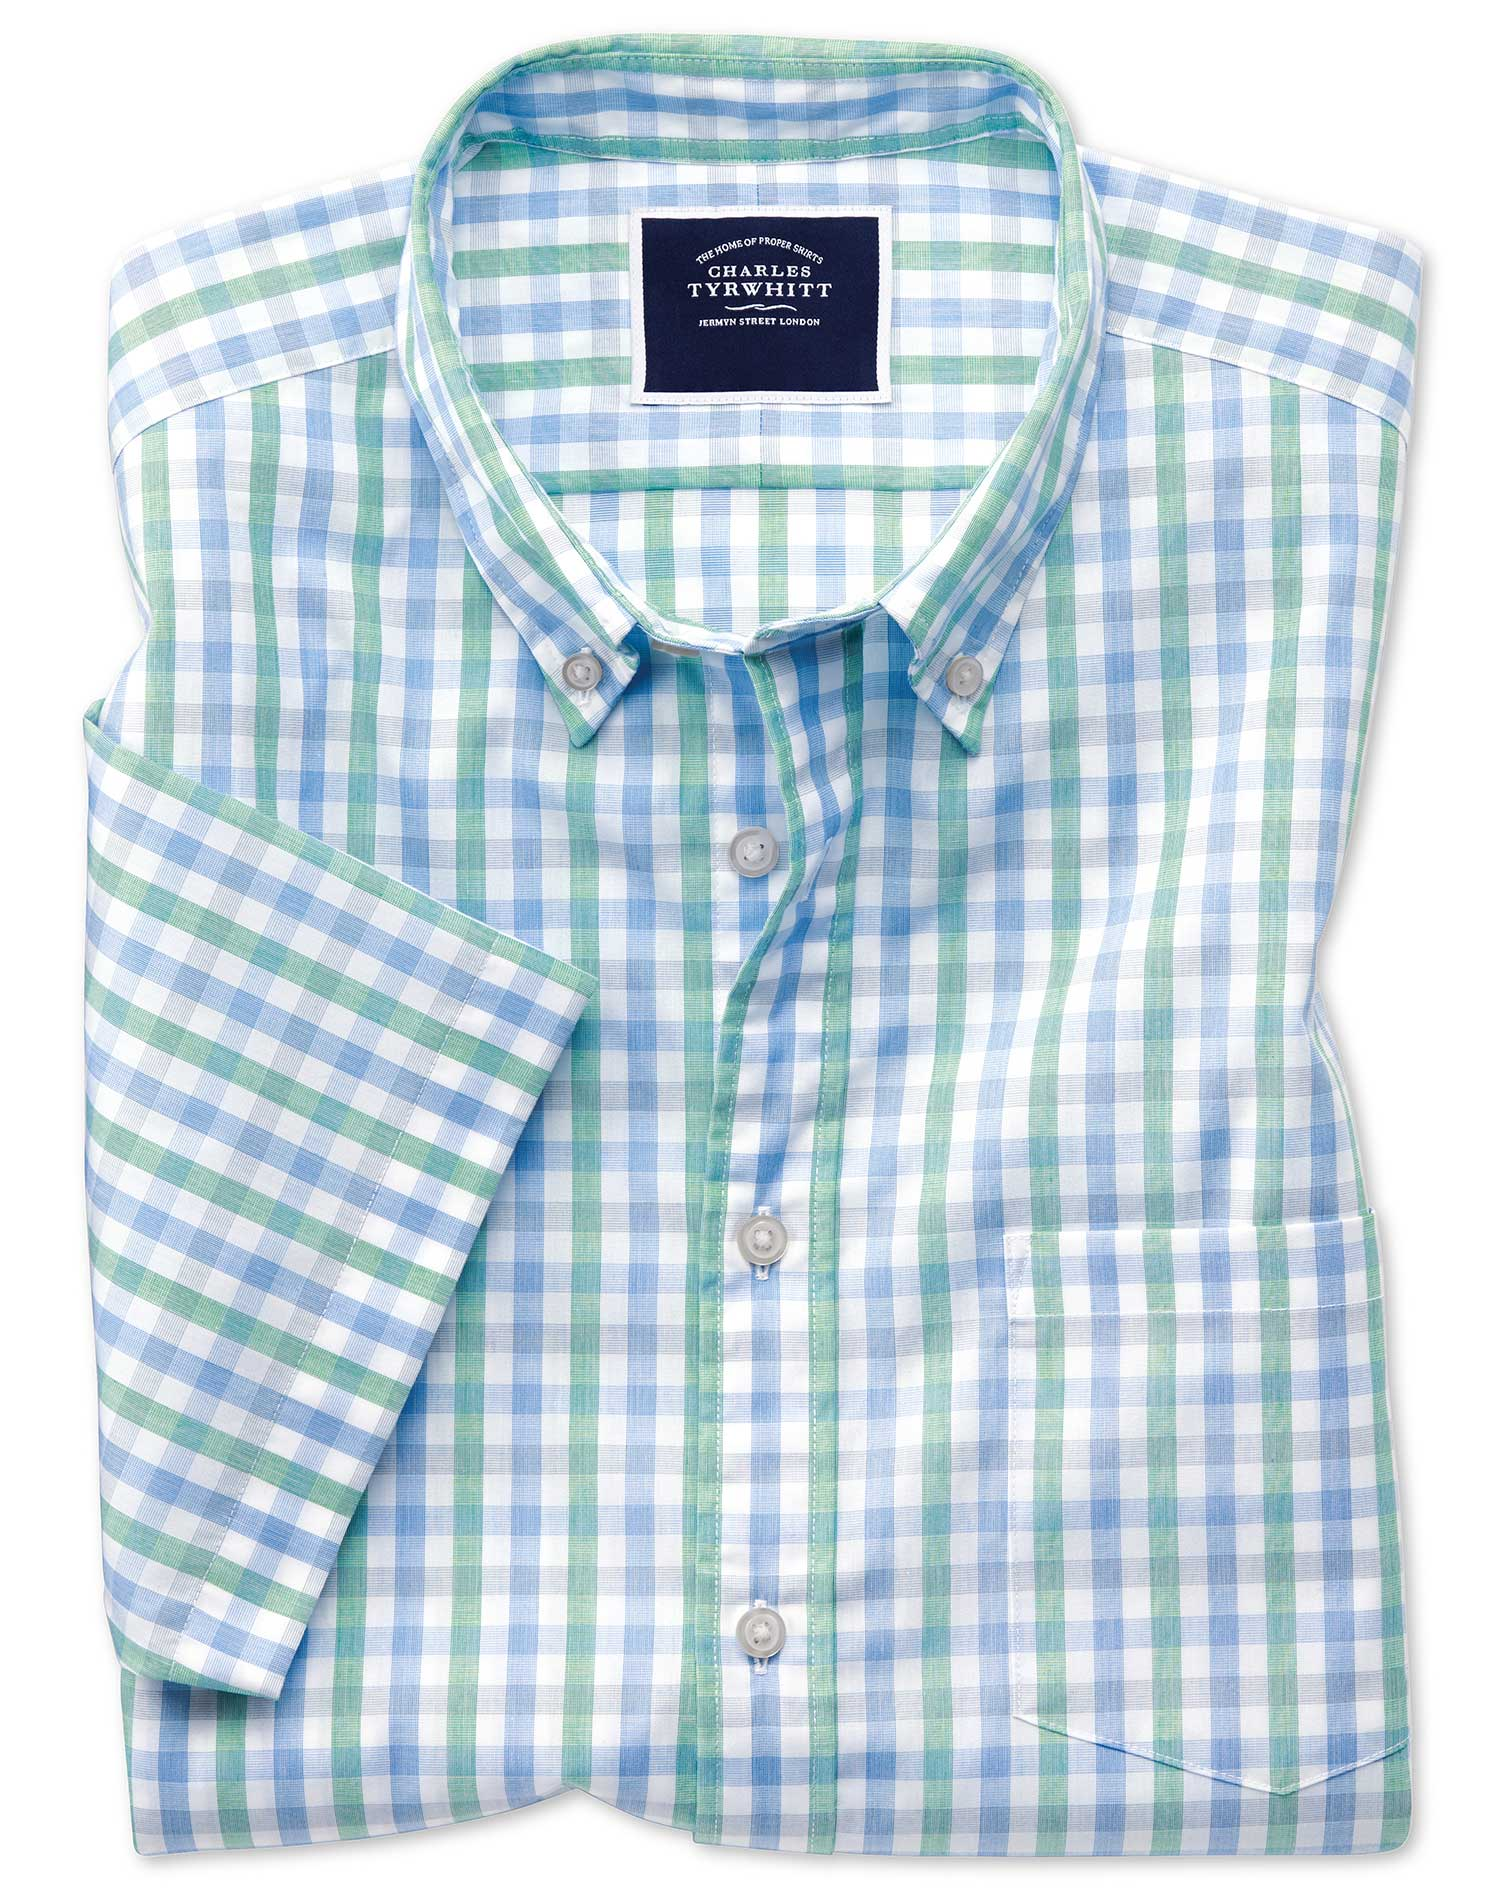 Slim Fit Green and Blue Short Sleeve Gingham Soft Washed Non-Iron Tyrwhitt Cool Cotton Shirt Single